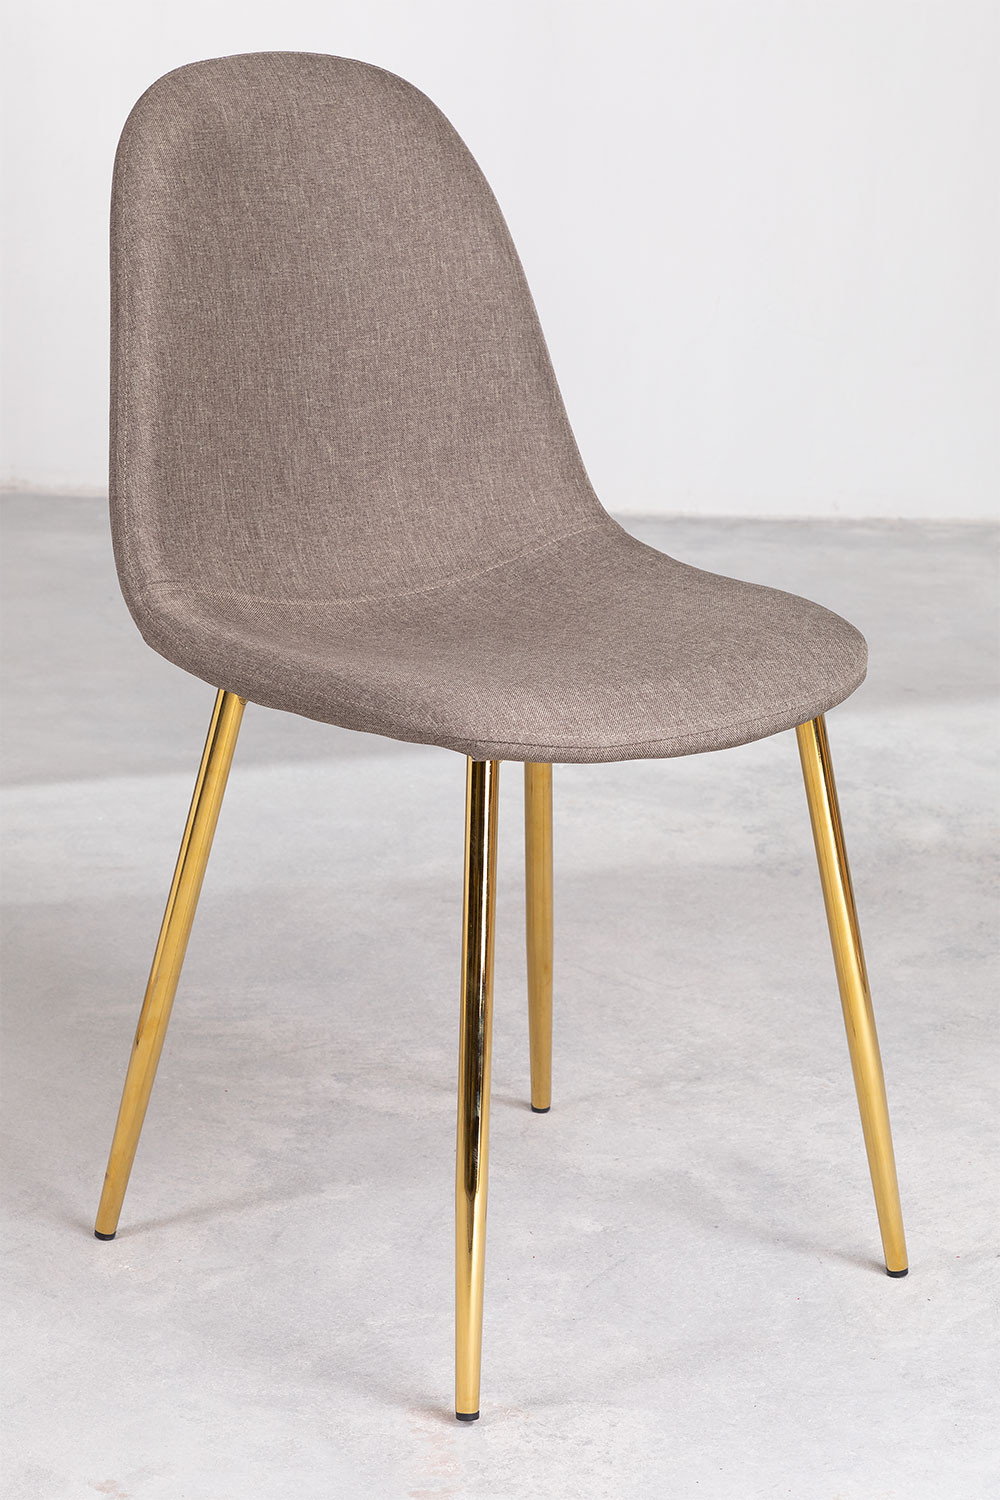 PACK 2 Glamm Dining Chairs, gallery image 1